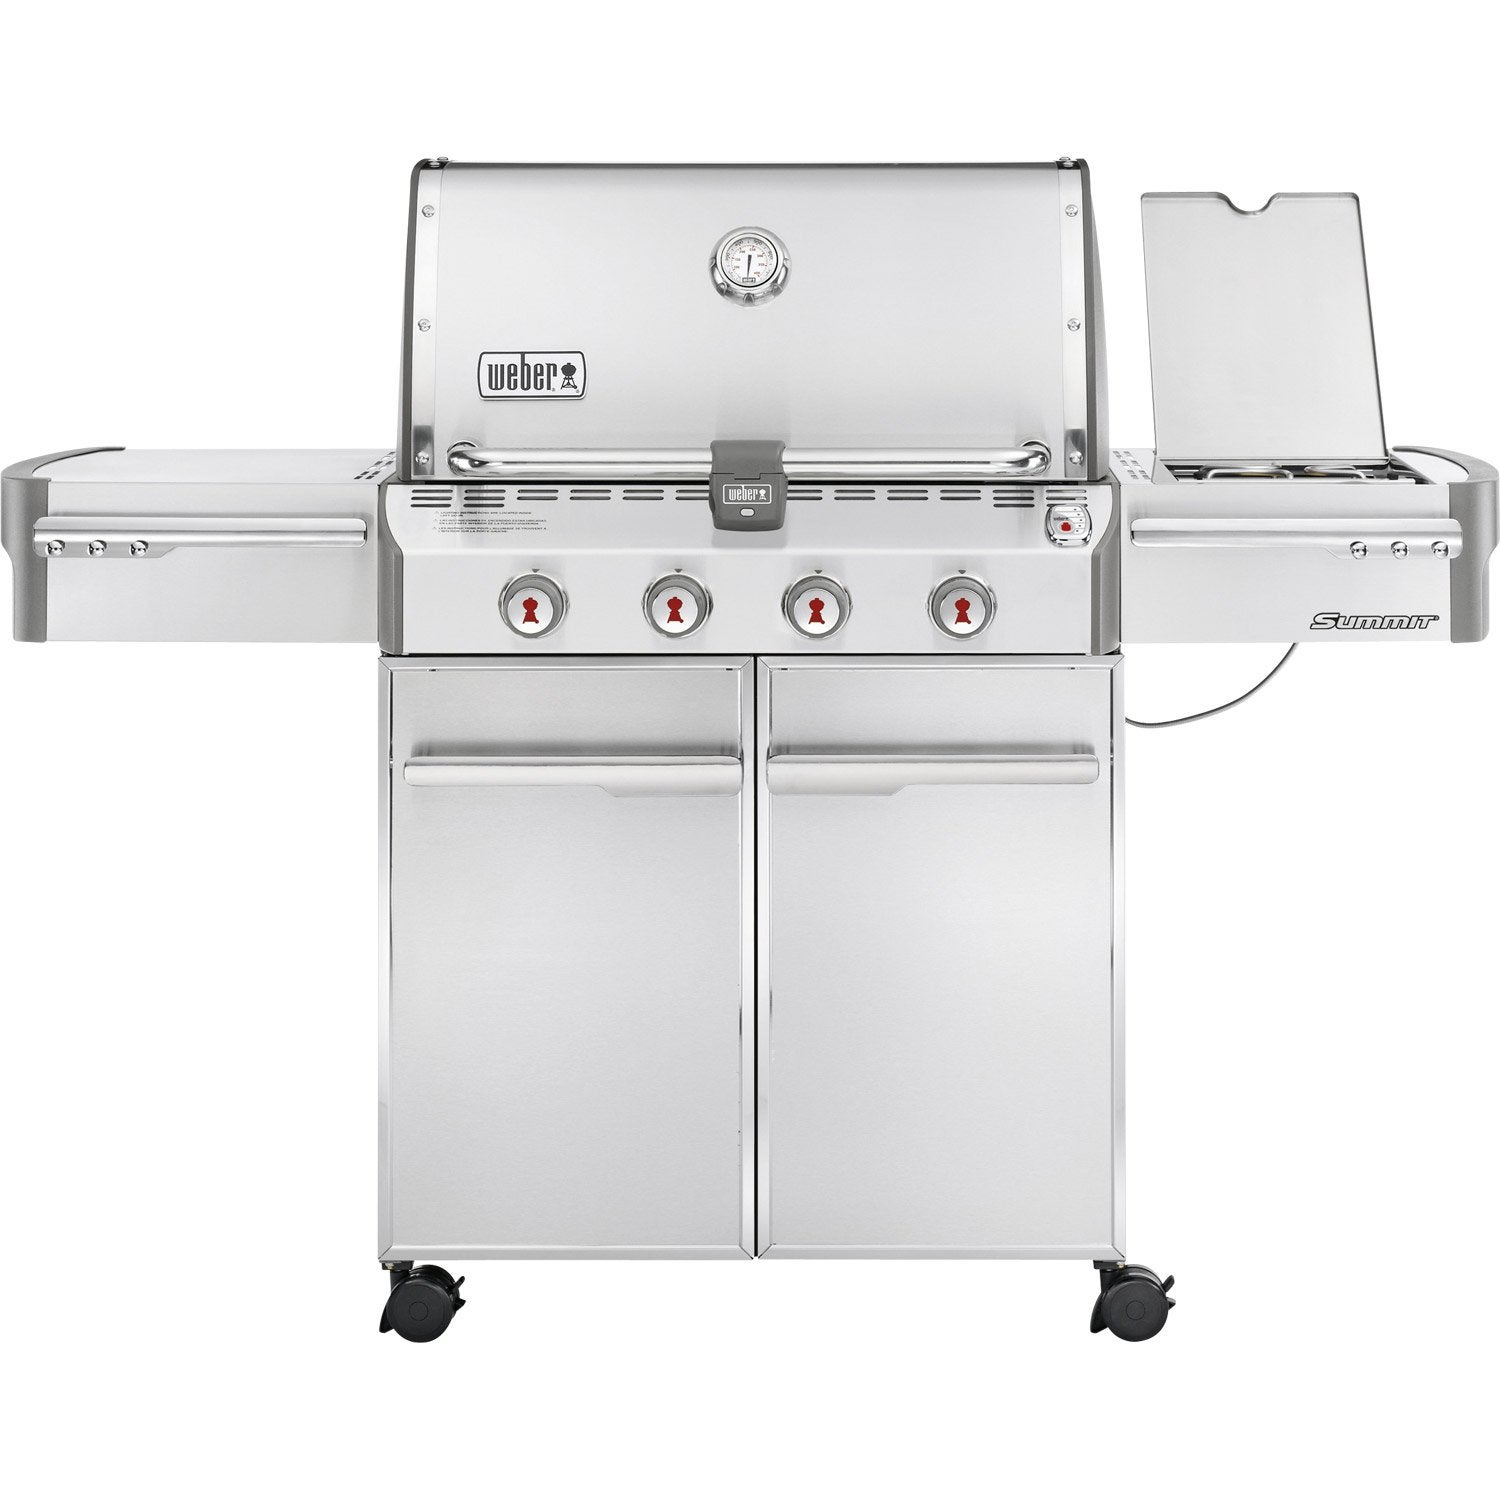 Barbecue au gaz weber summit 4 bruleurs leroy merlin for Barbecue weber gaz q120